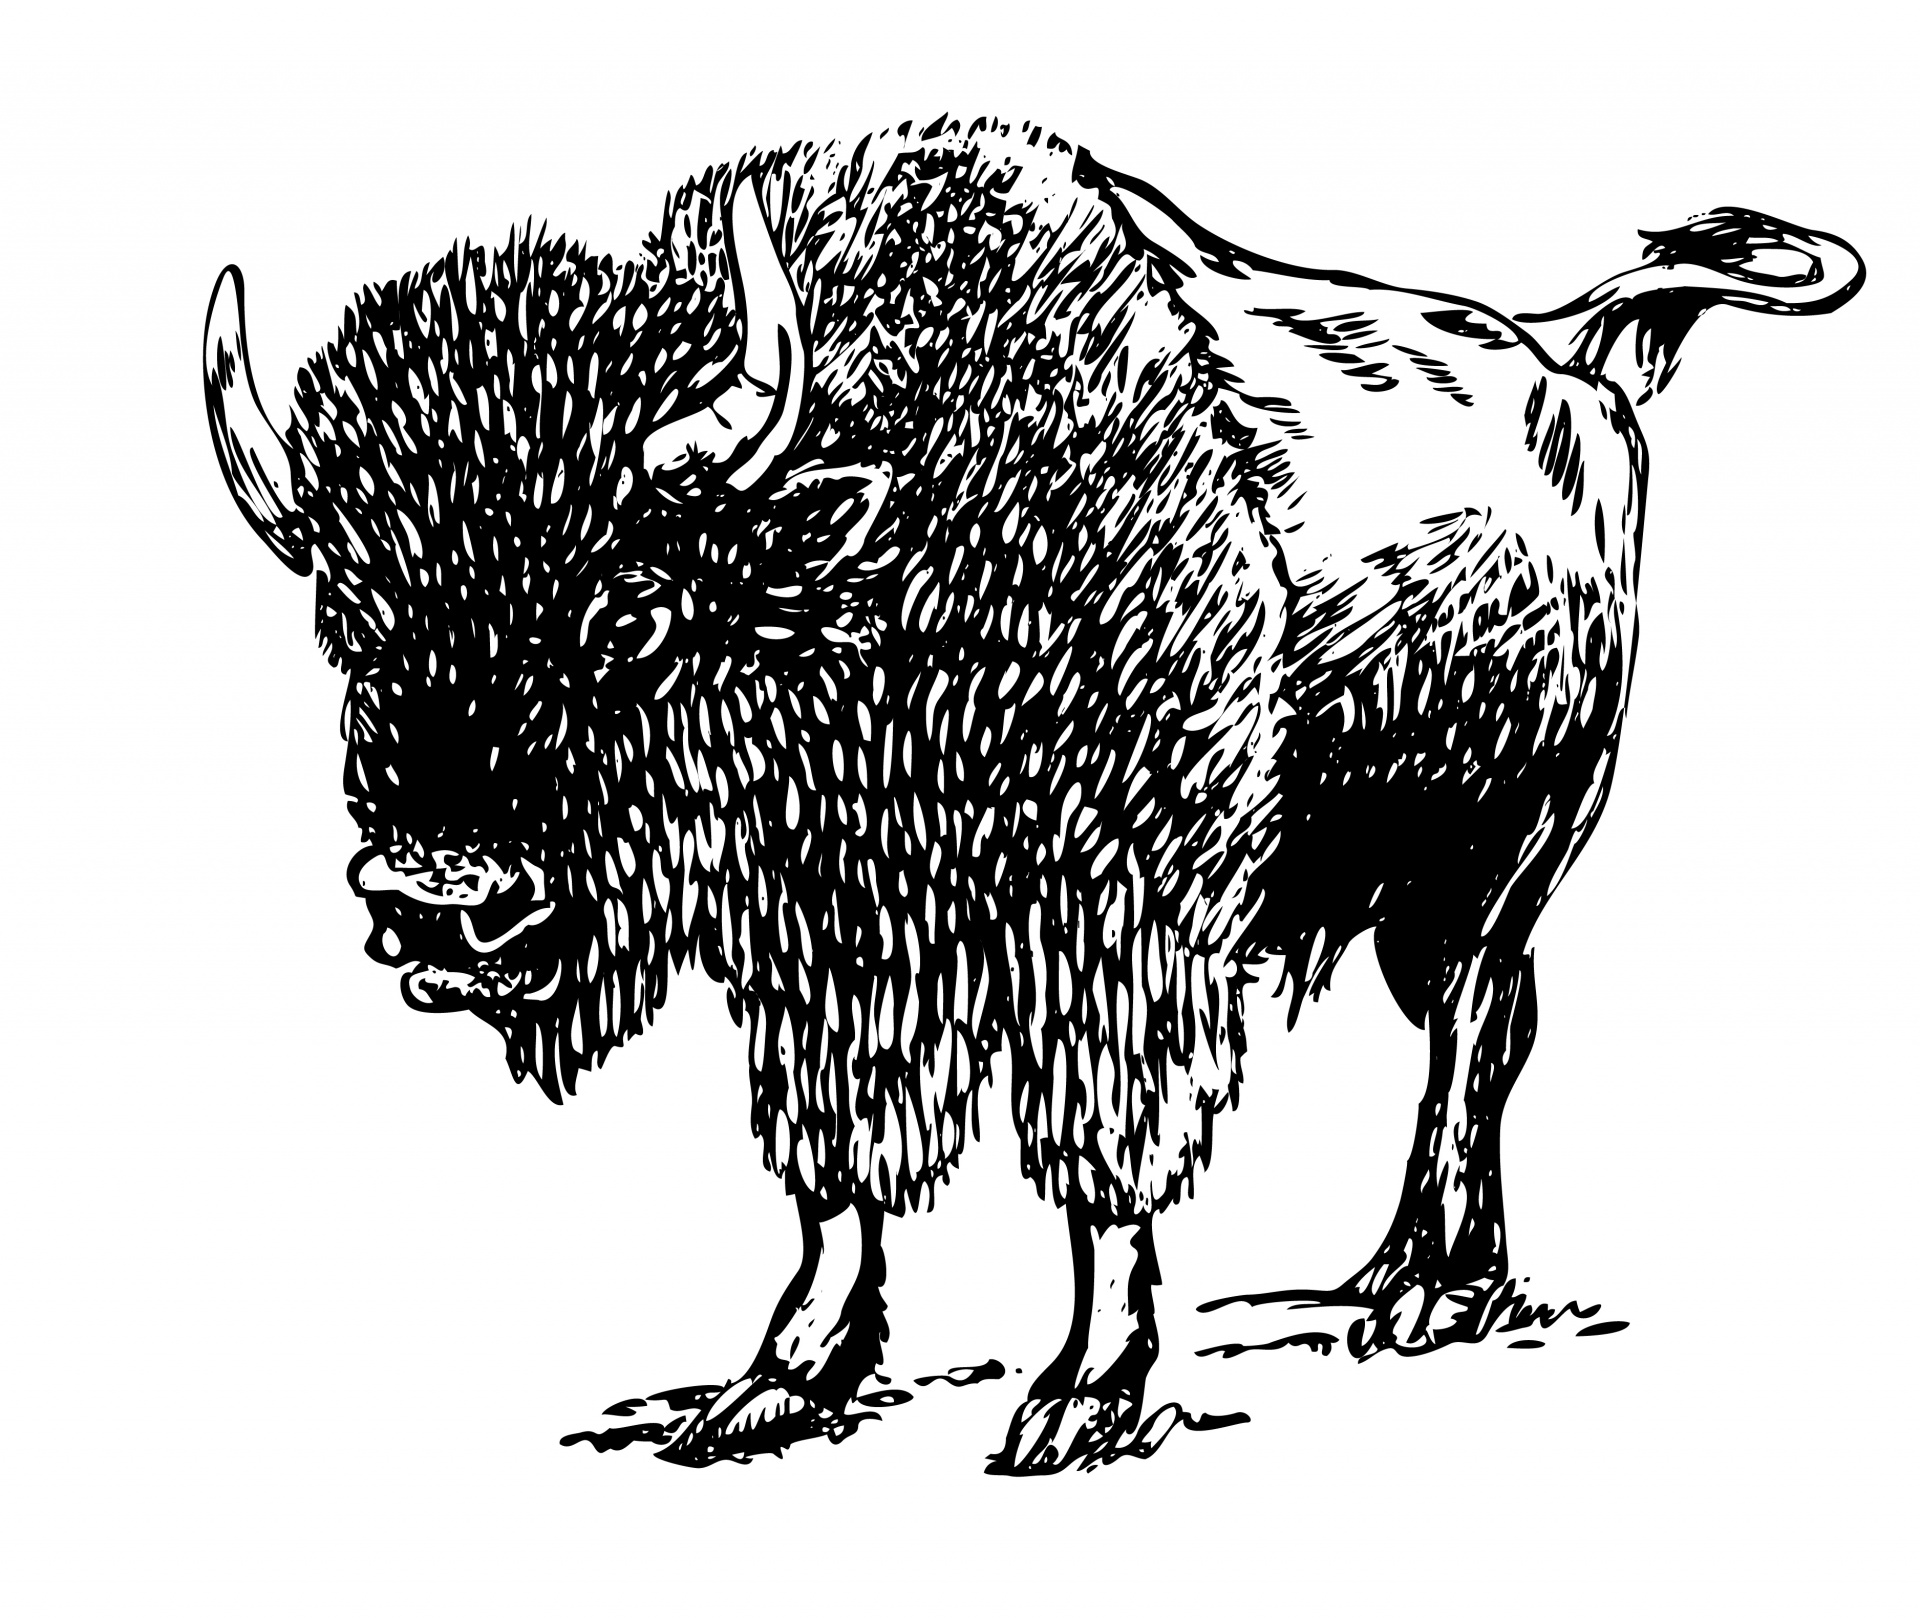 Illustration free stock photo. Bison clipart clip art